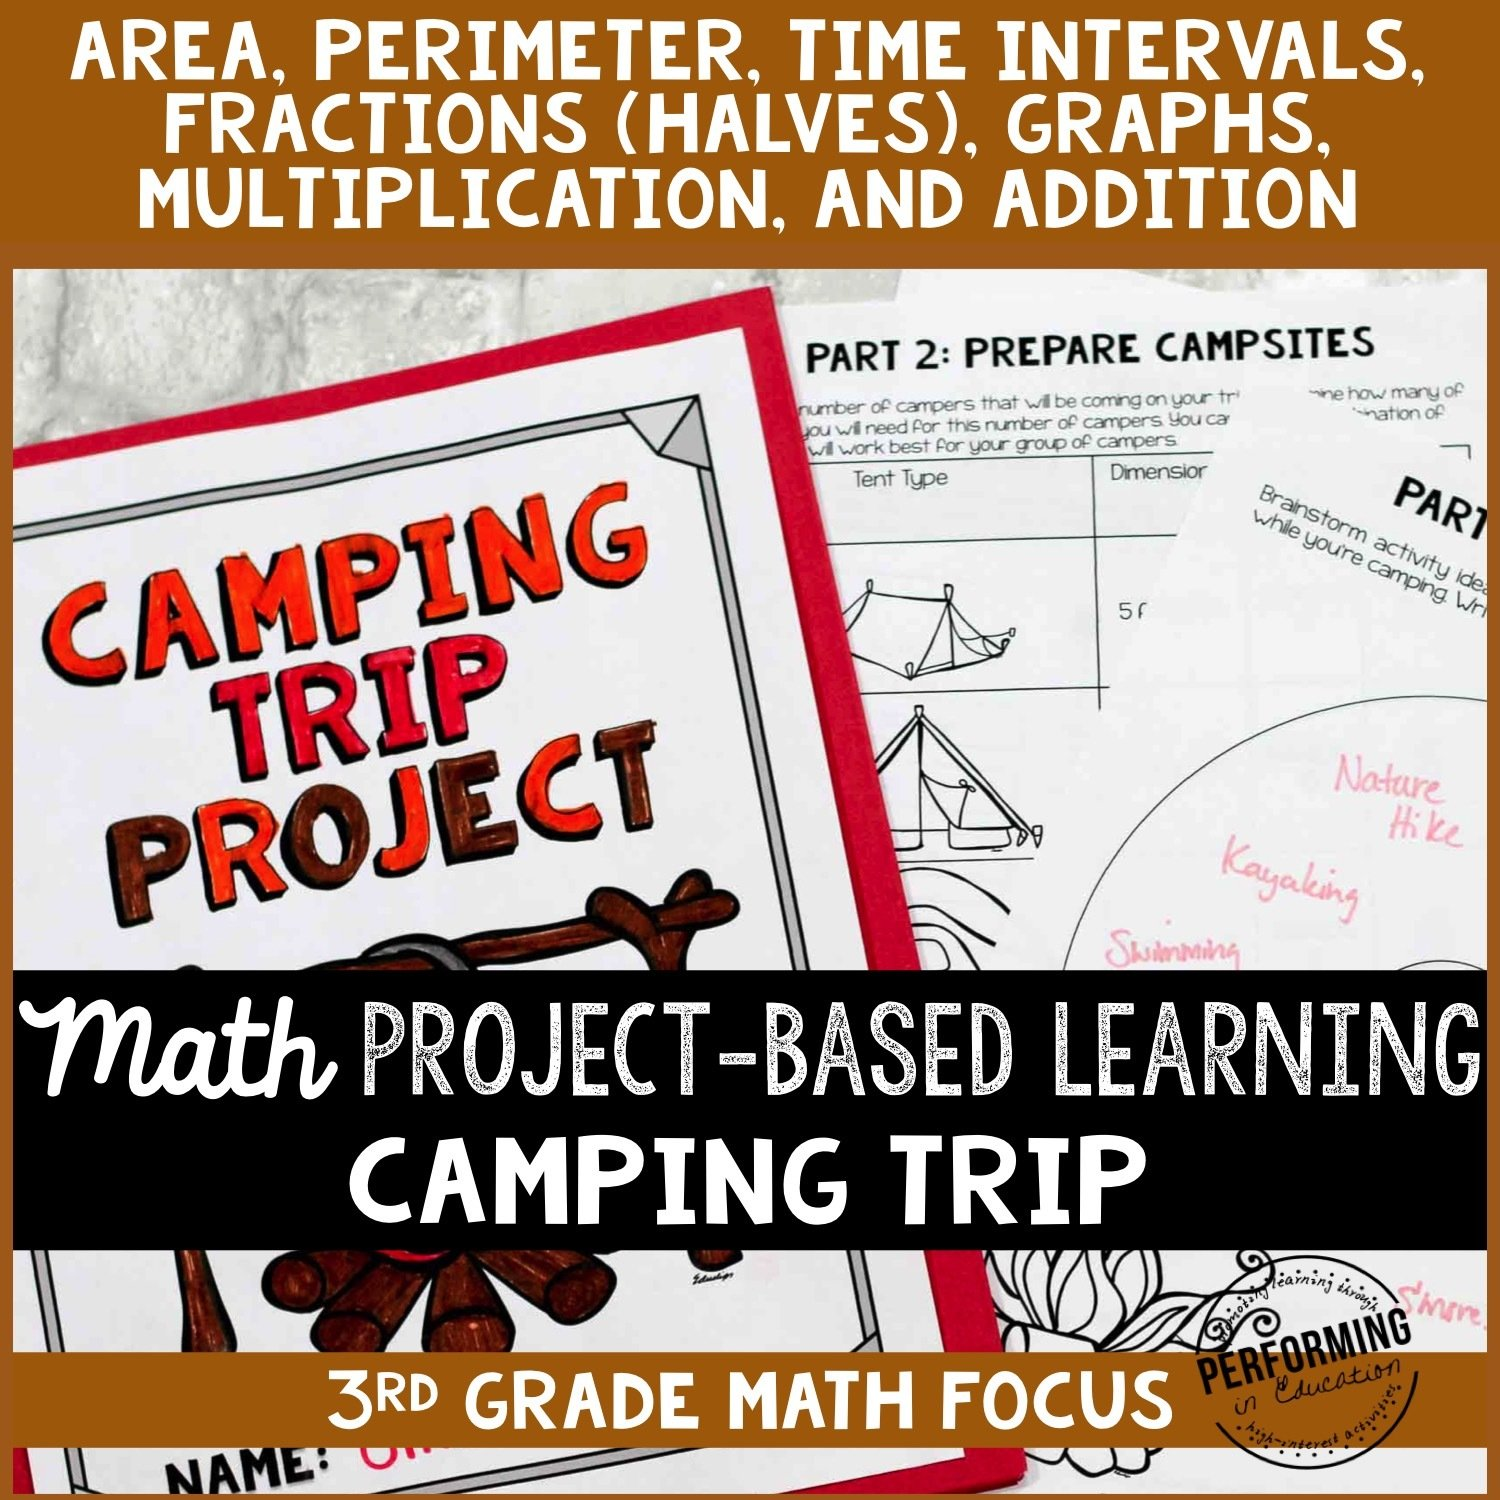 Math Project-based Learning for 3rd Grade: Camping Trip! 00055